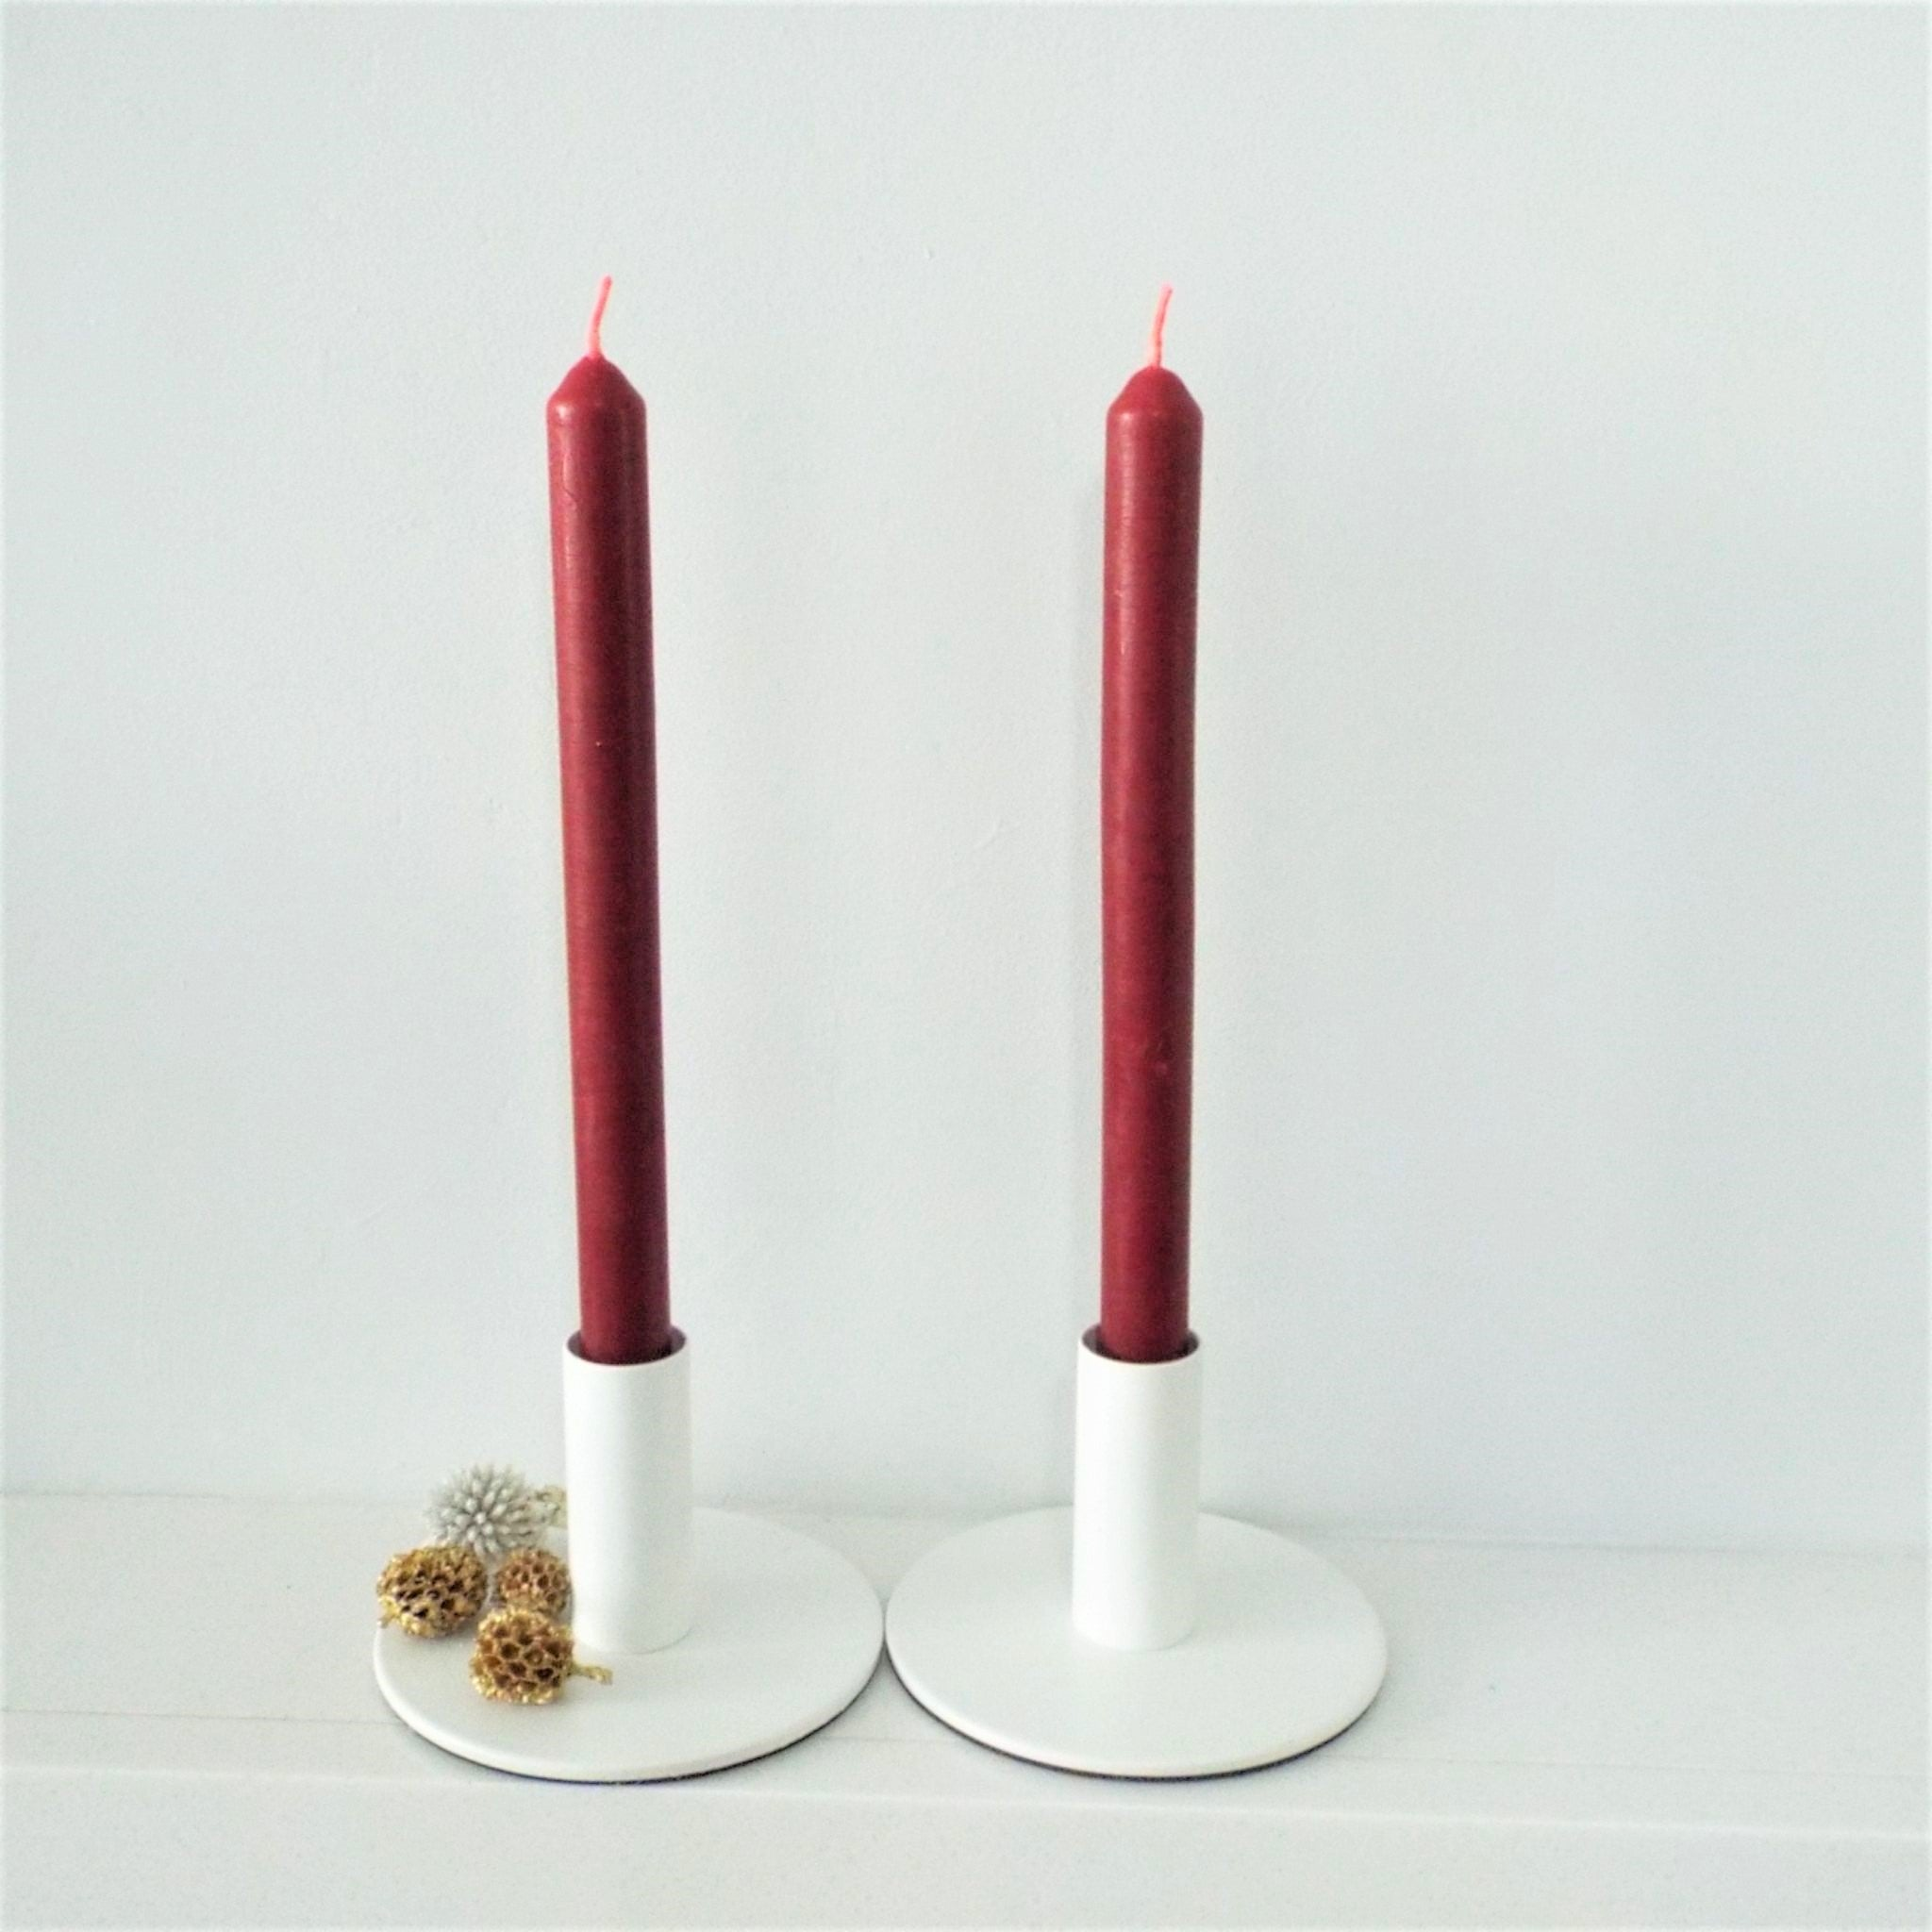 Beeswax Dinner Candles in Red